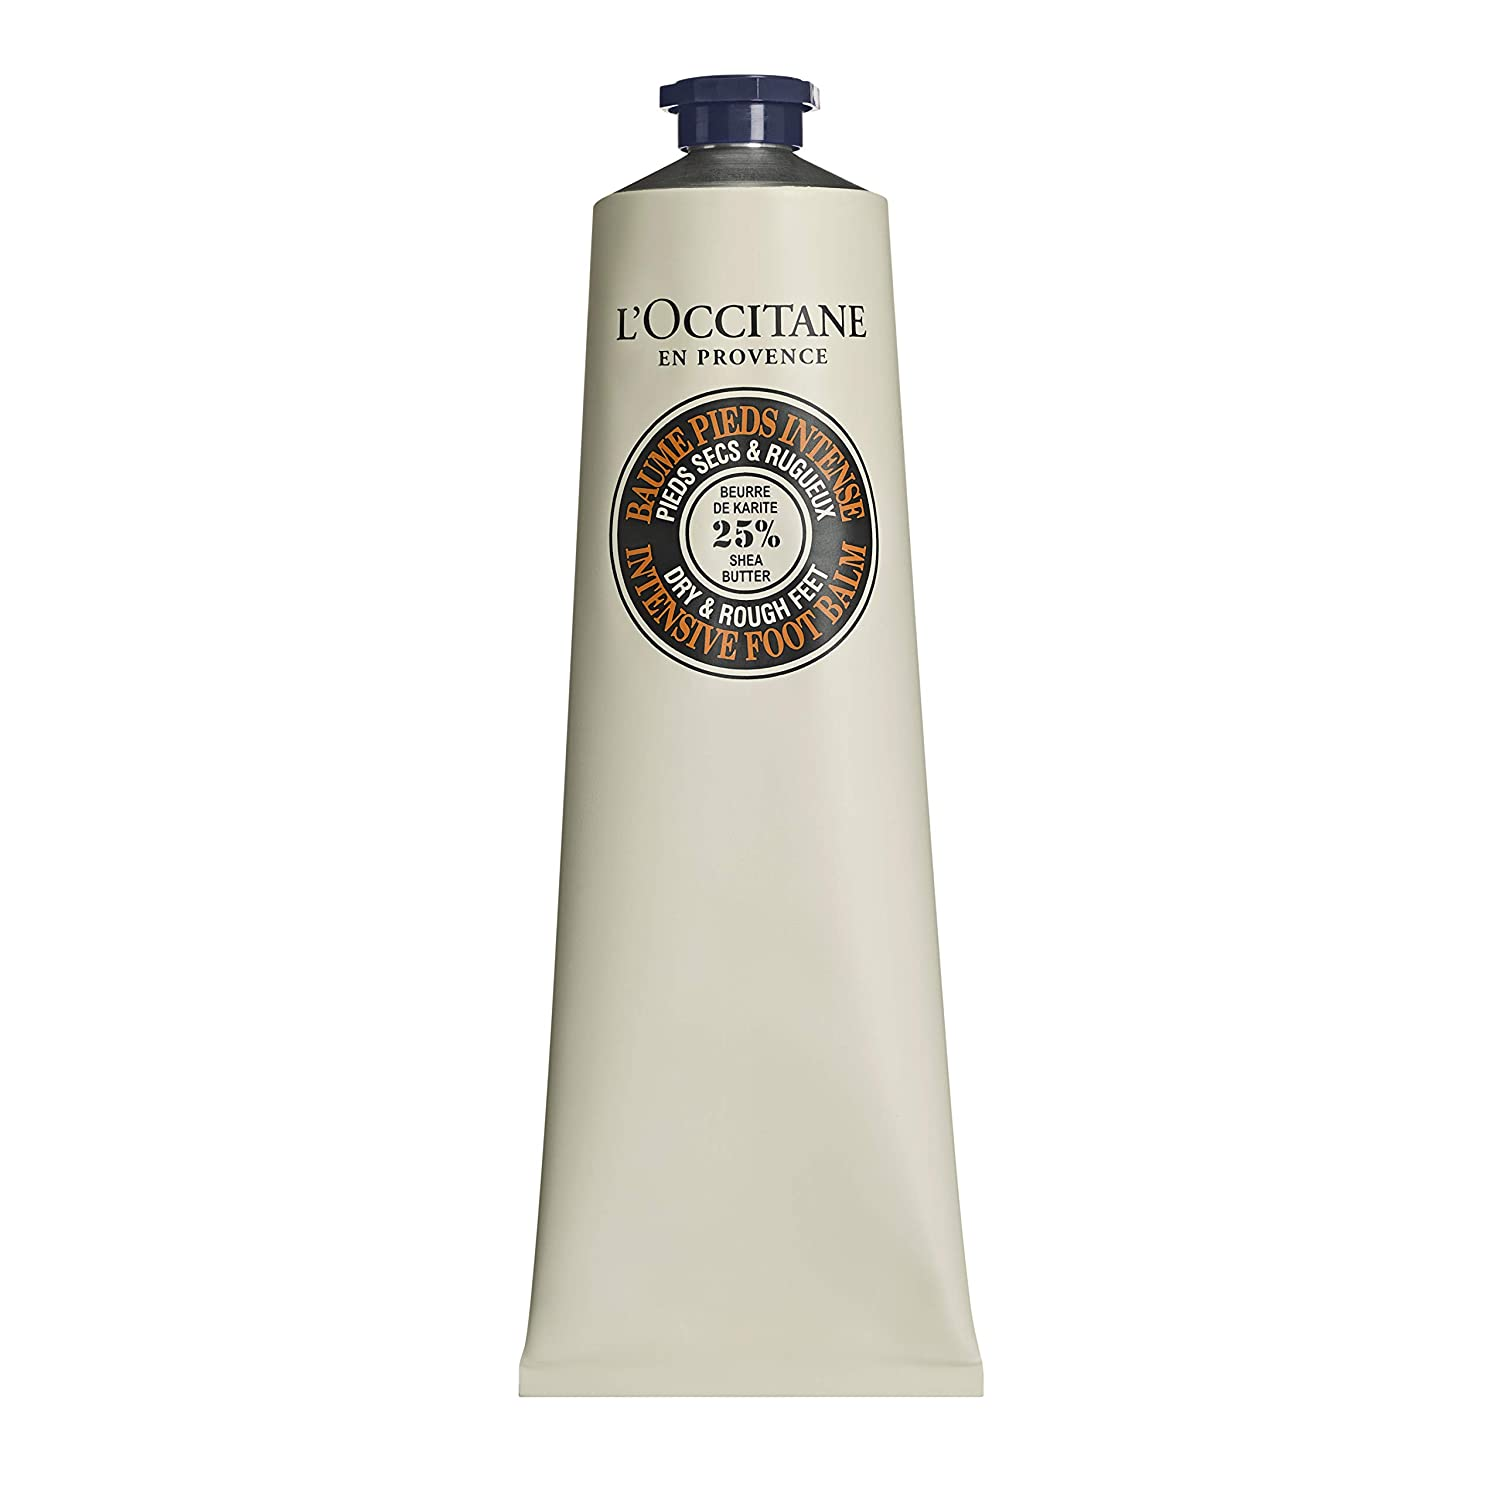 L'Occitane Shea Butter Intensive Foot Balm